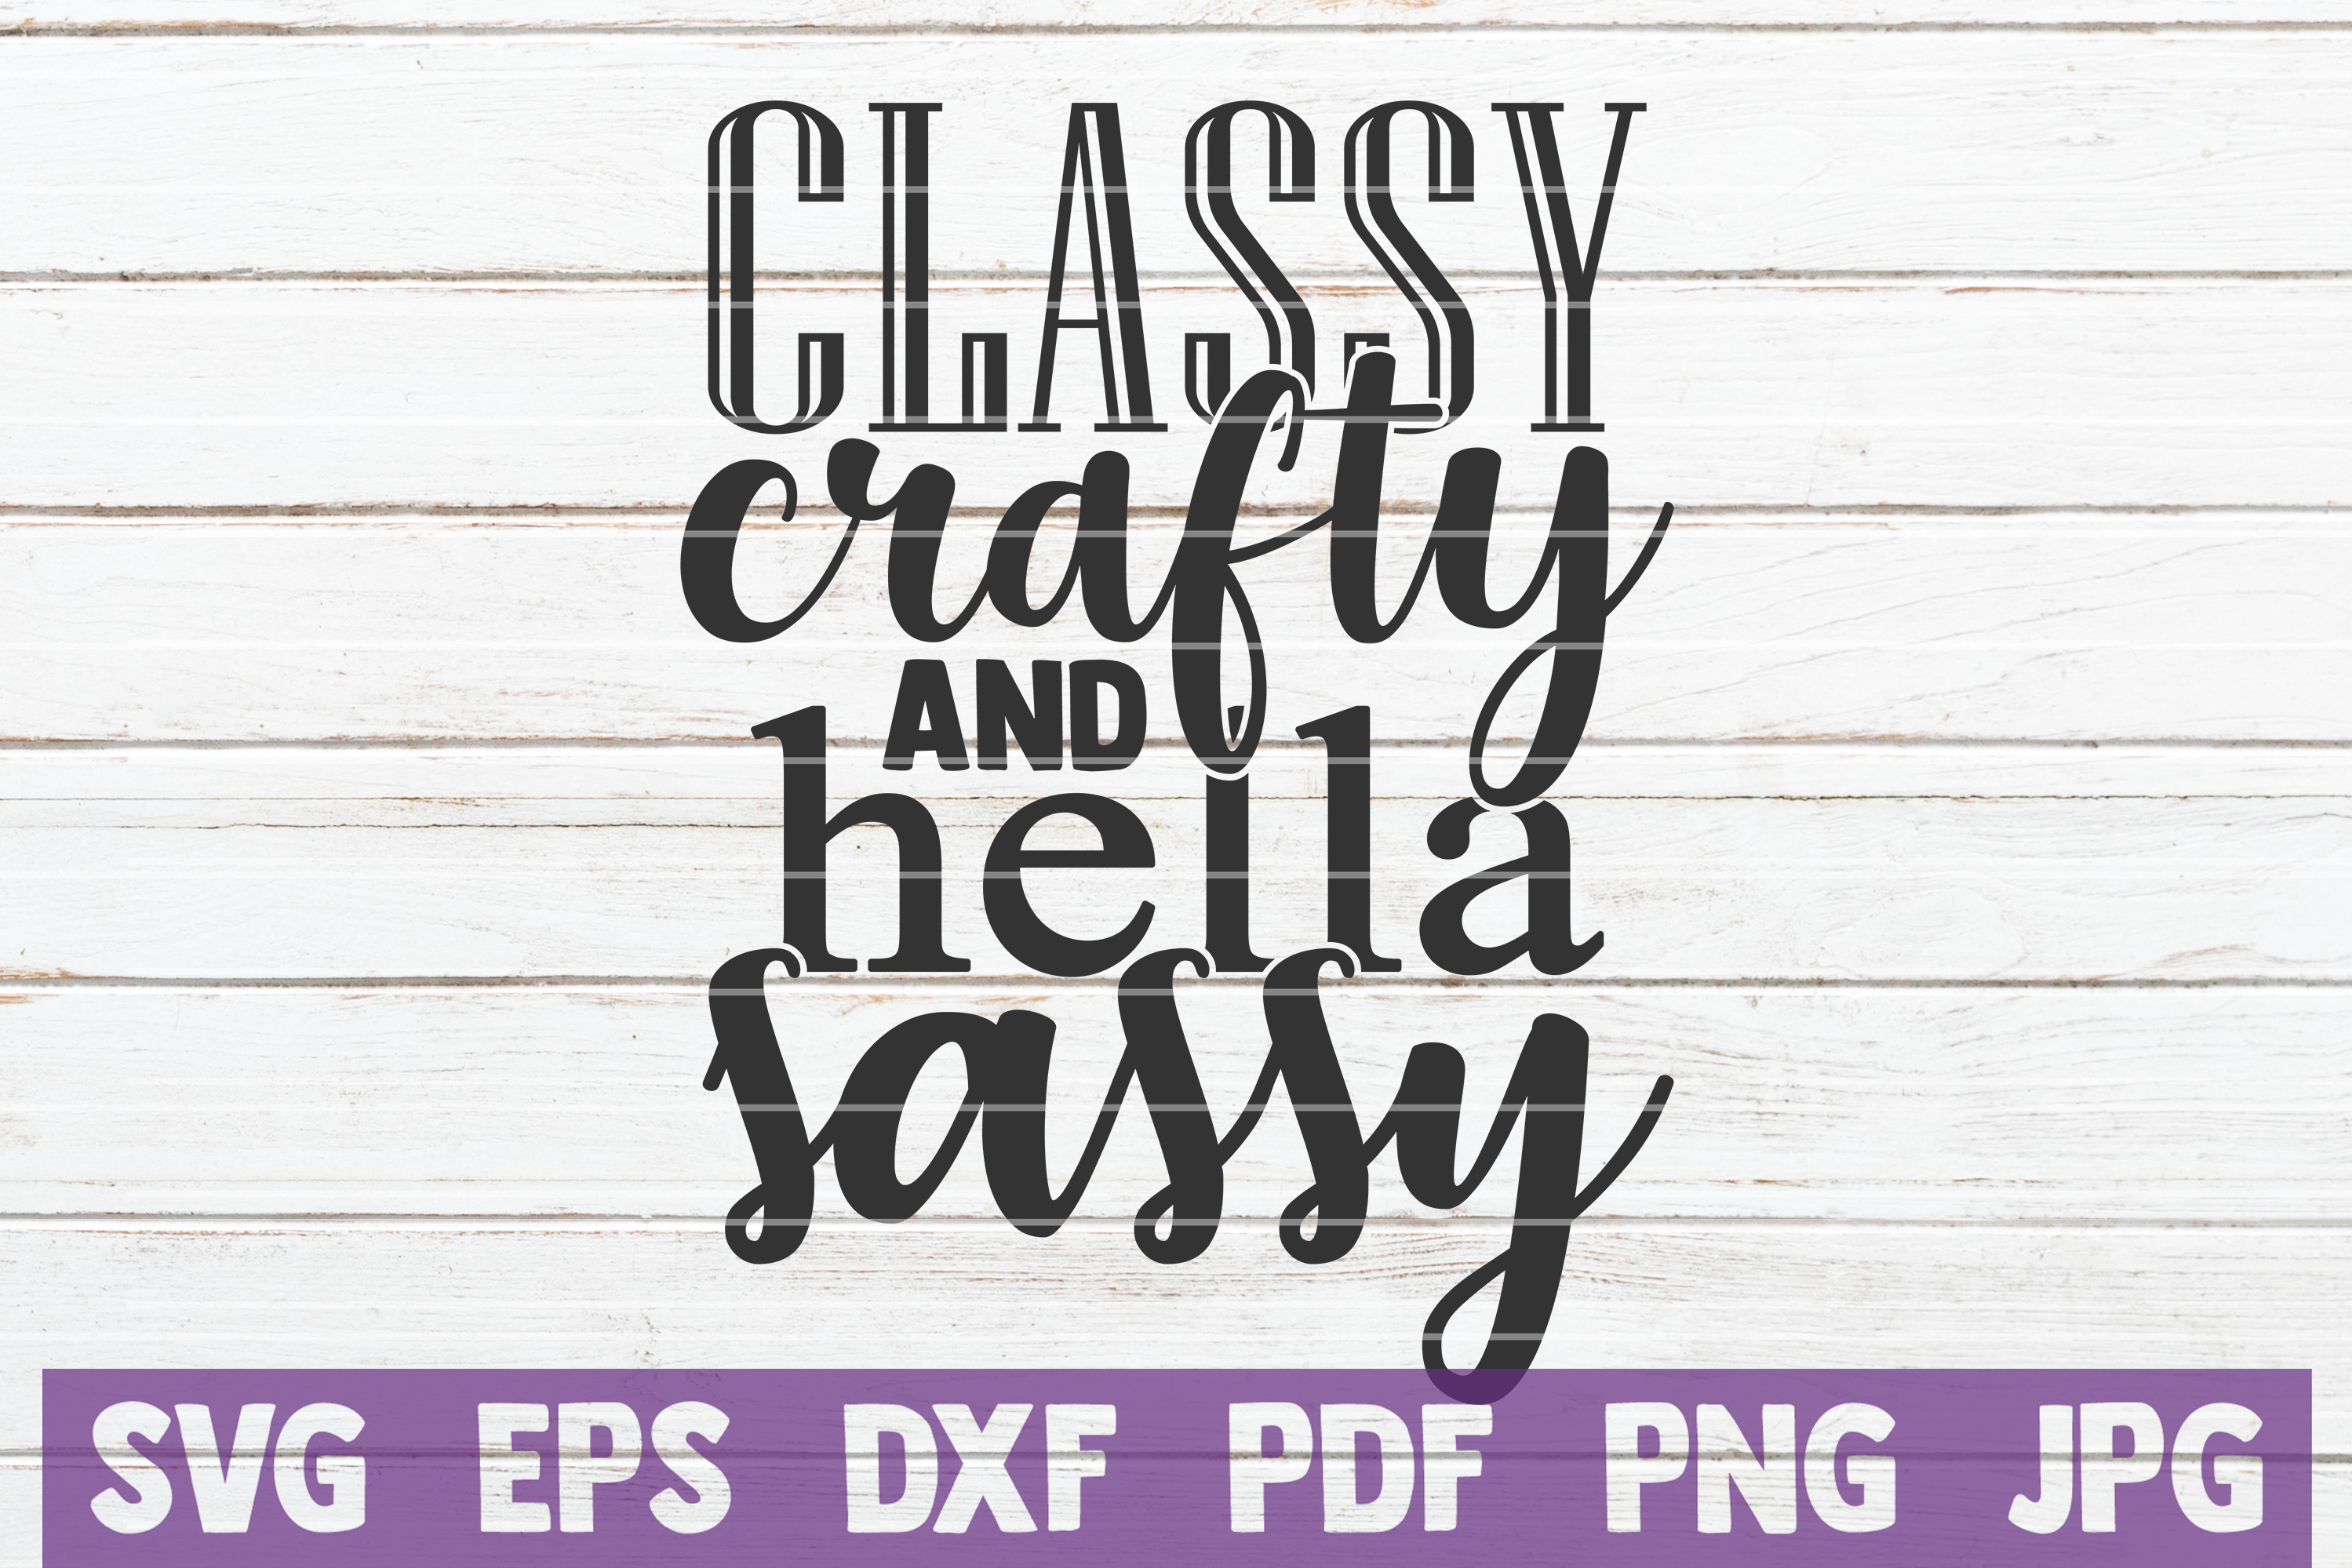 Download Free Classy Crafty And Hella Sassy Graphic By Mintymarshmallows for Cricut Explore, Silhouette and other cutting machines.